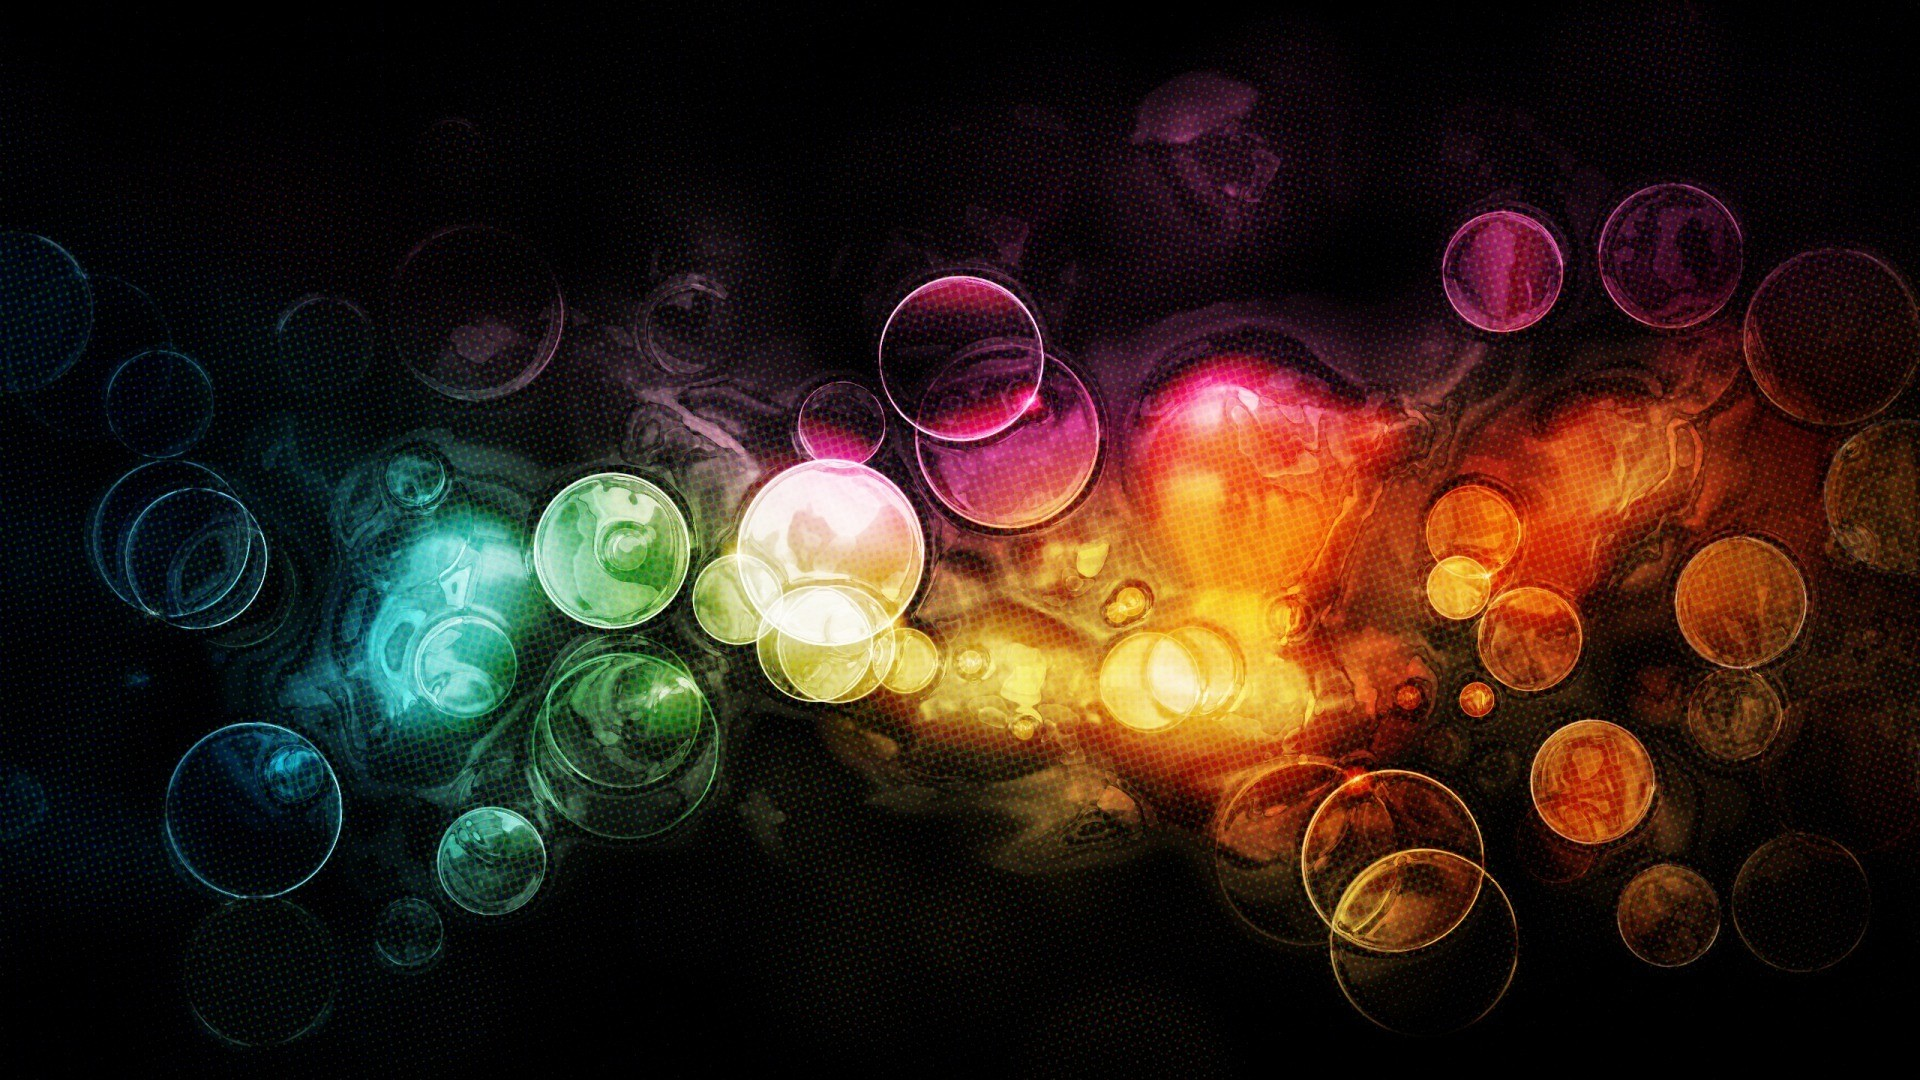 … Free Desktop Abstract Wallpapers HD Wallpapers, Backgrounds .